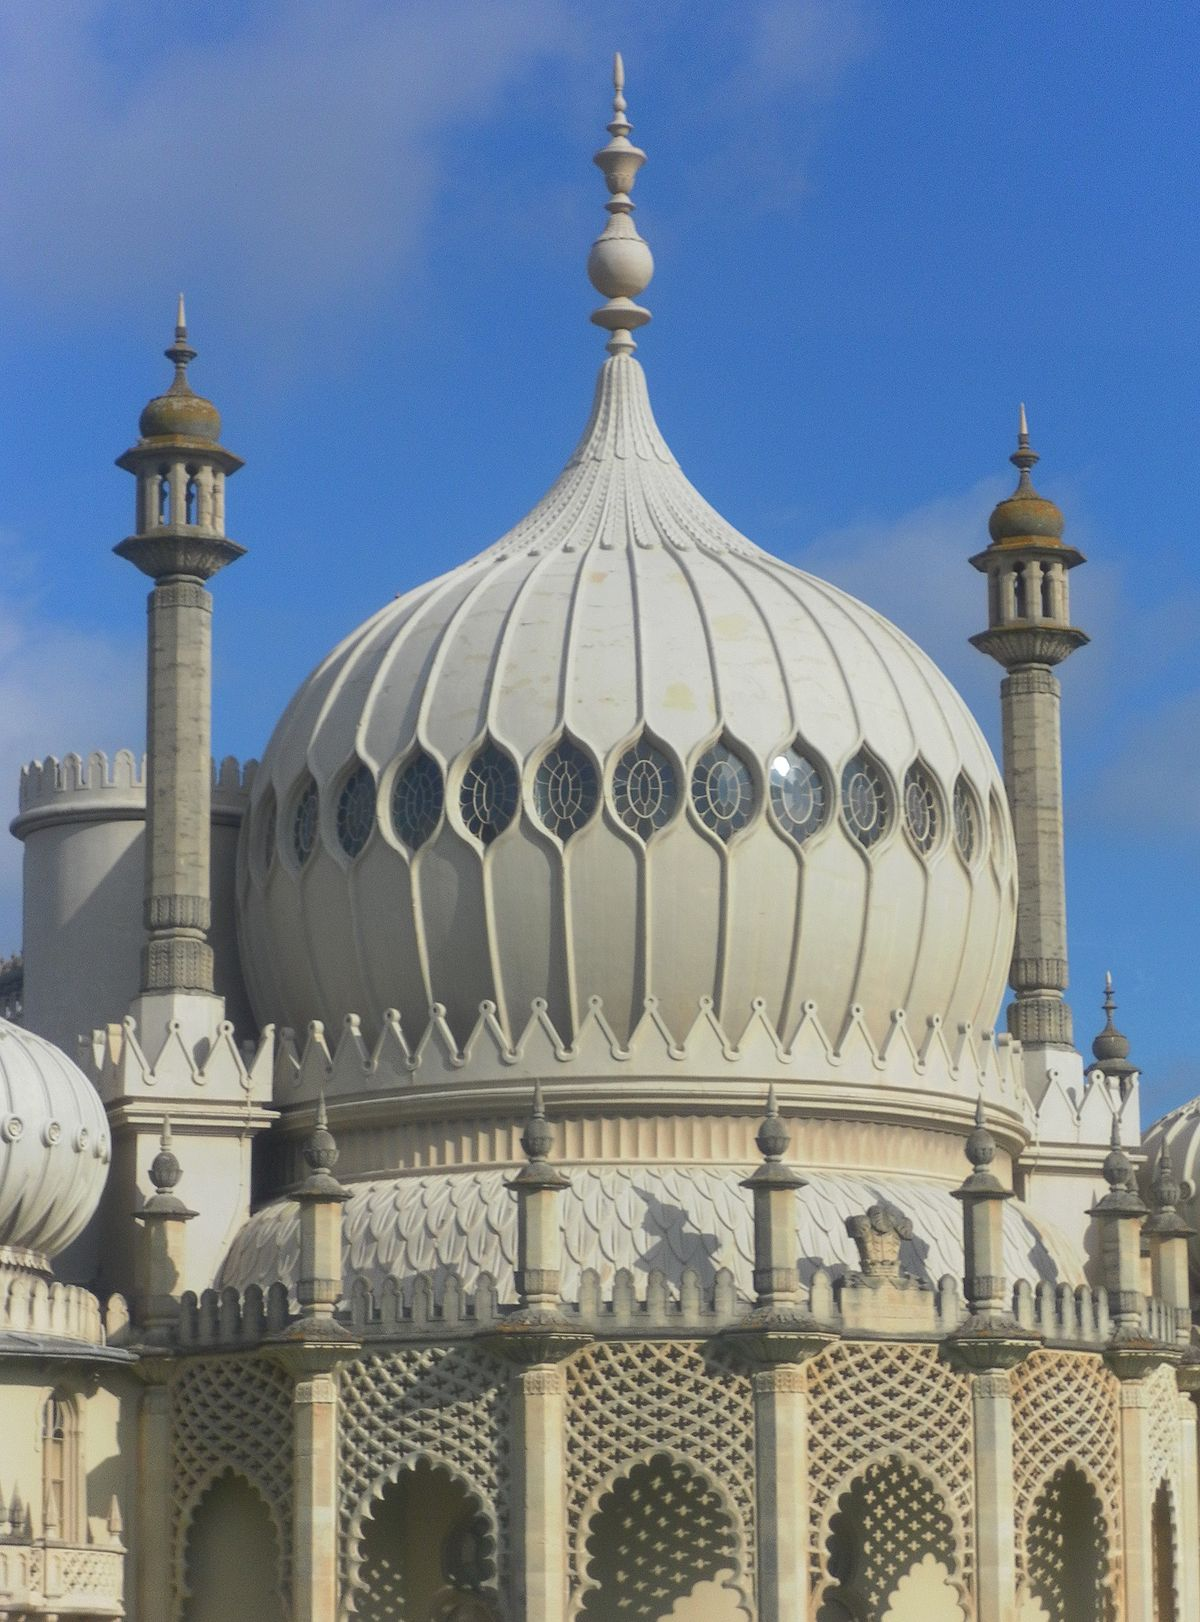 Buildings And Architecture Of Brighton And Hove